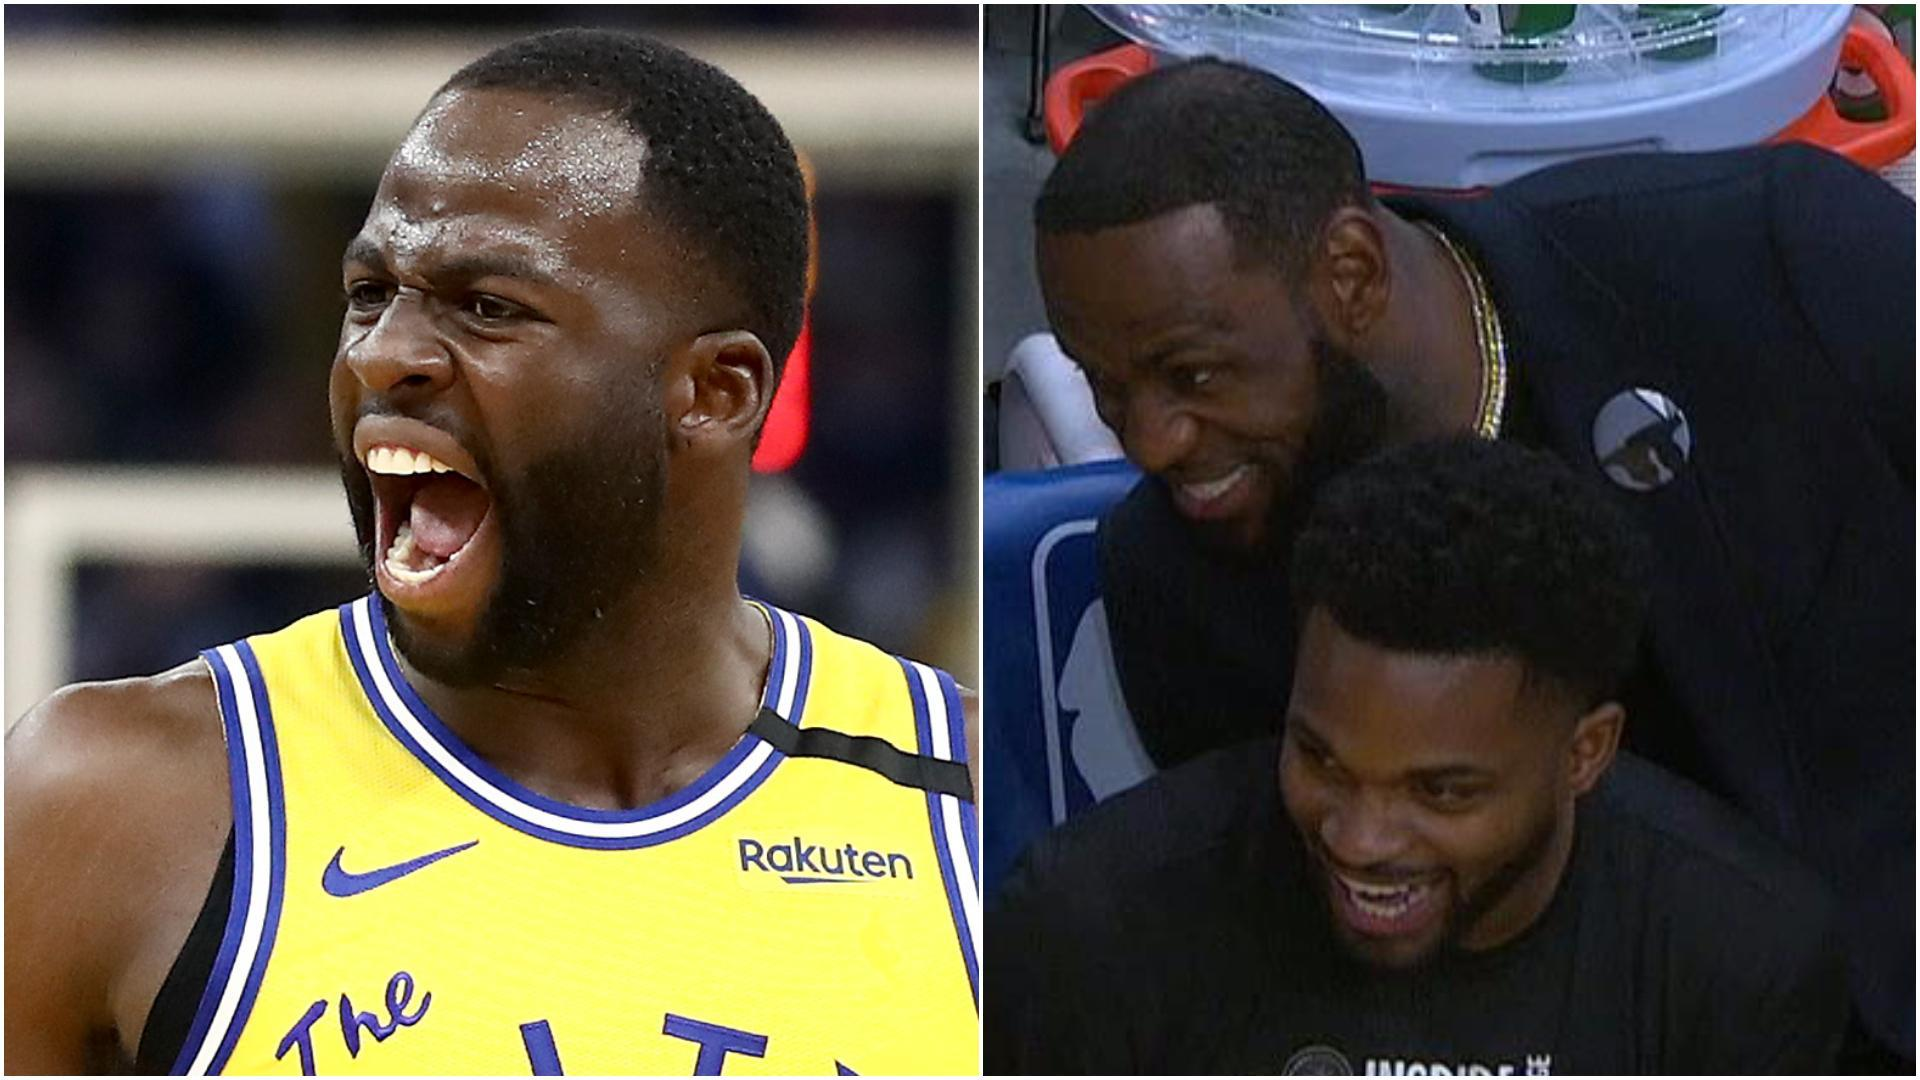 LeBron has no chill cheering on Draymond's ejection